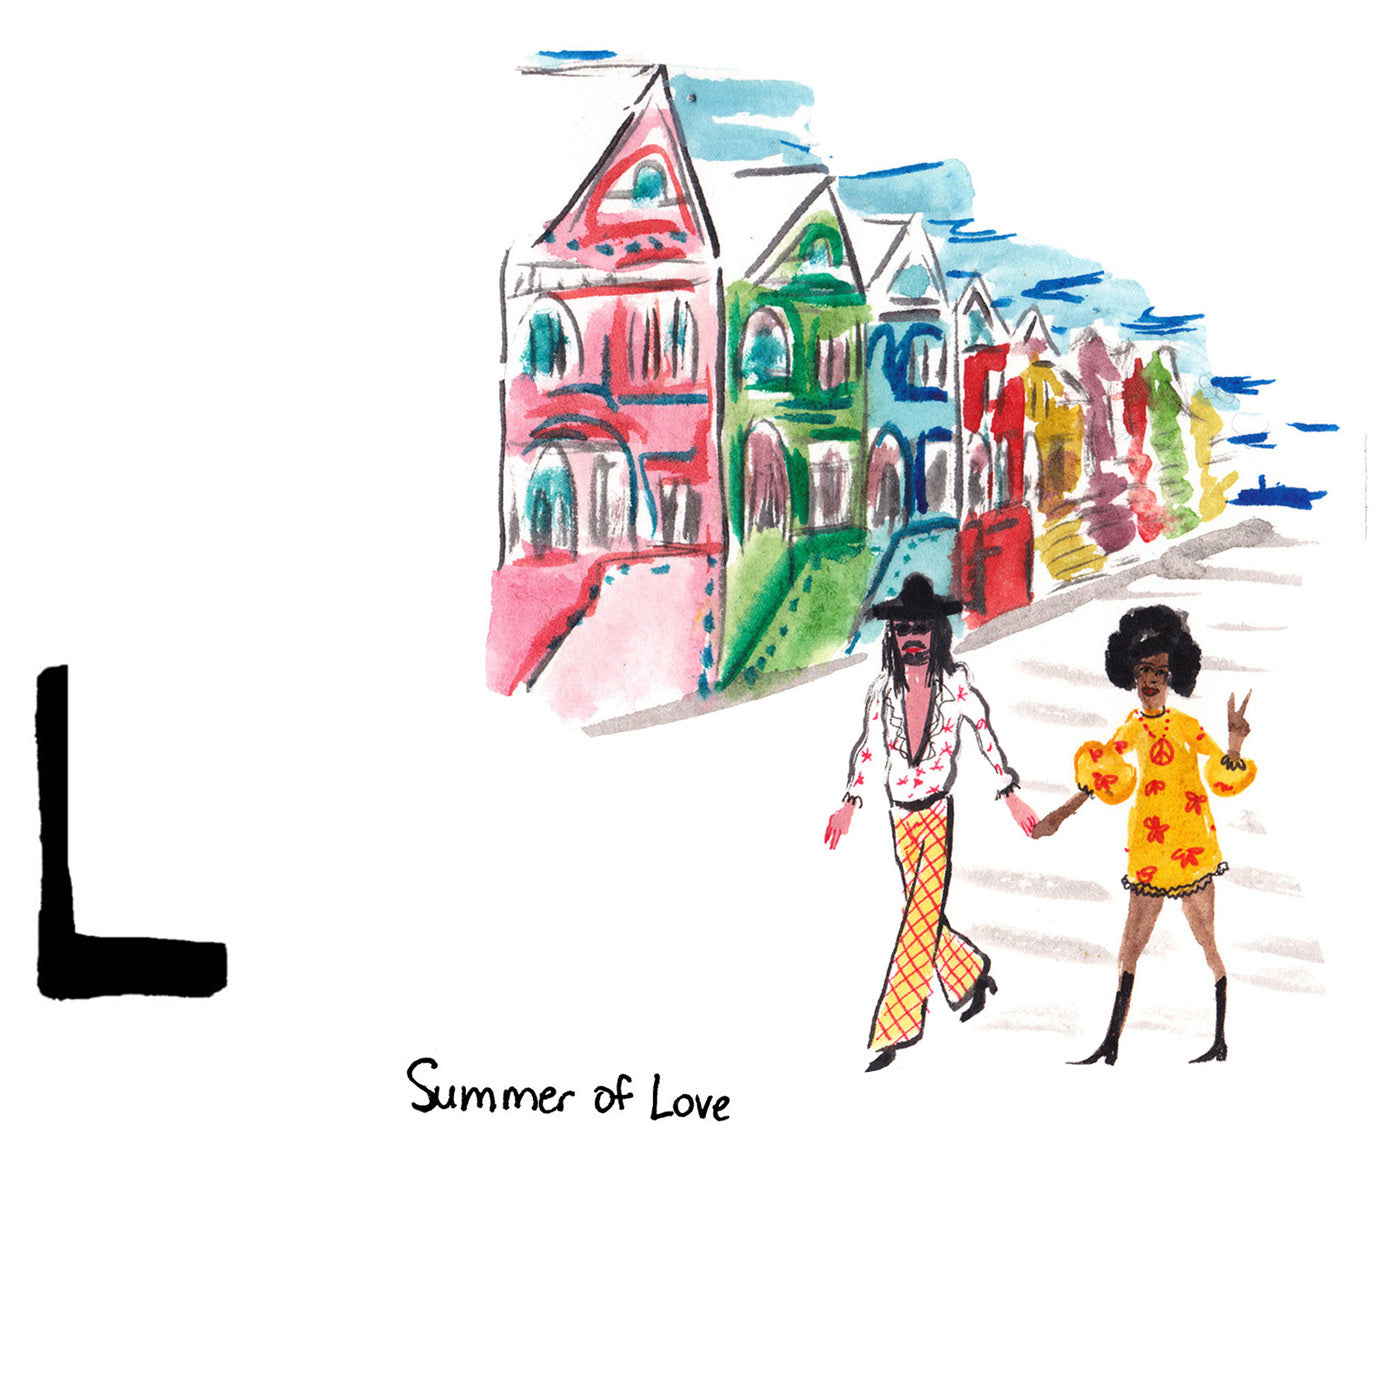 L is for Summer of Love. Over 100,000 people were reported to have traveled to San Francisco's Haight-Ashbury neighborhood to peacefully demonstrate in response to the government's contentious involvement in the Vietnam War during the Summer of 1967, coining it 'The Summer of Love.'